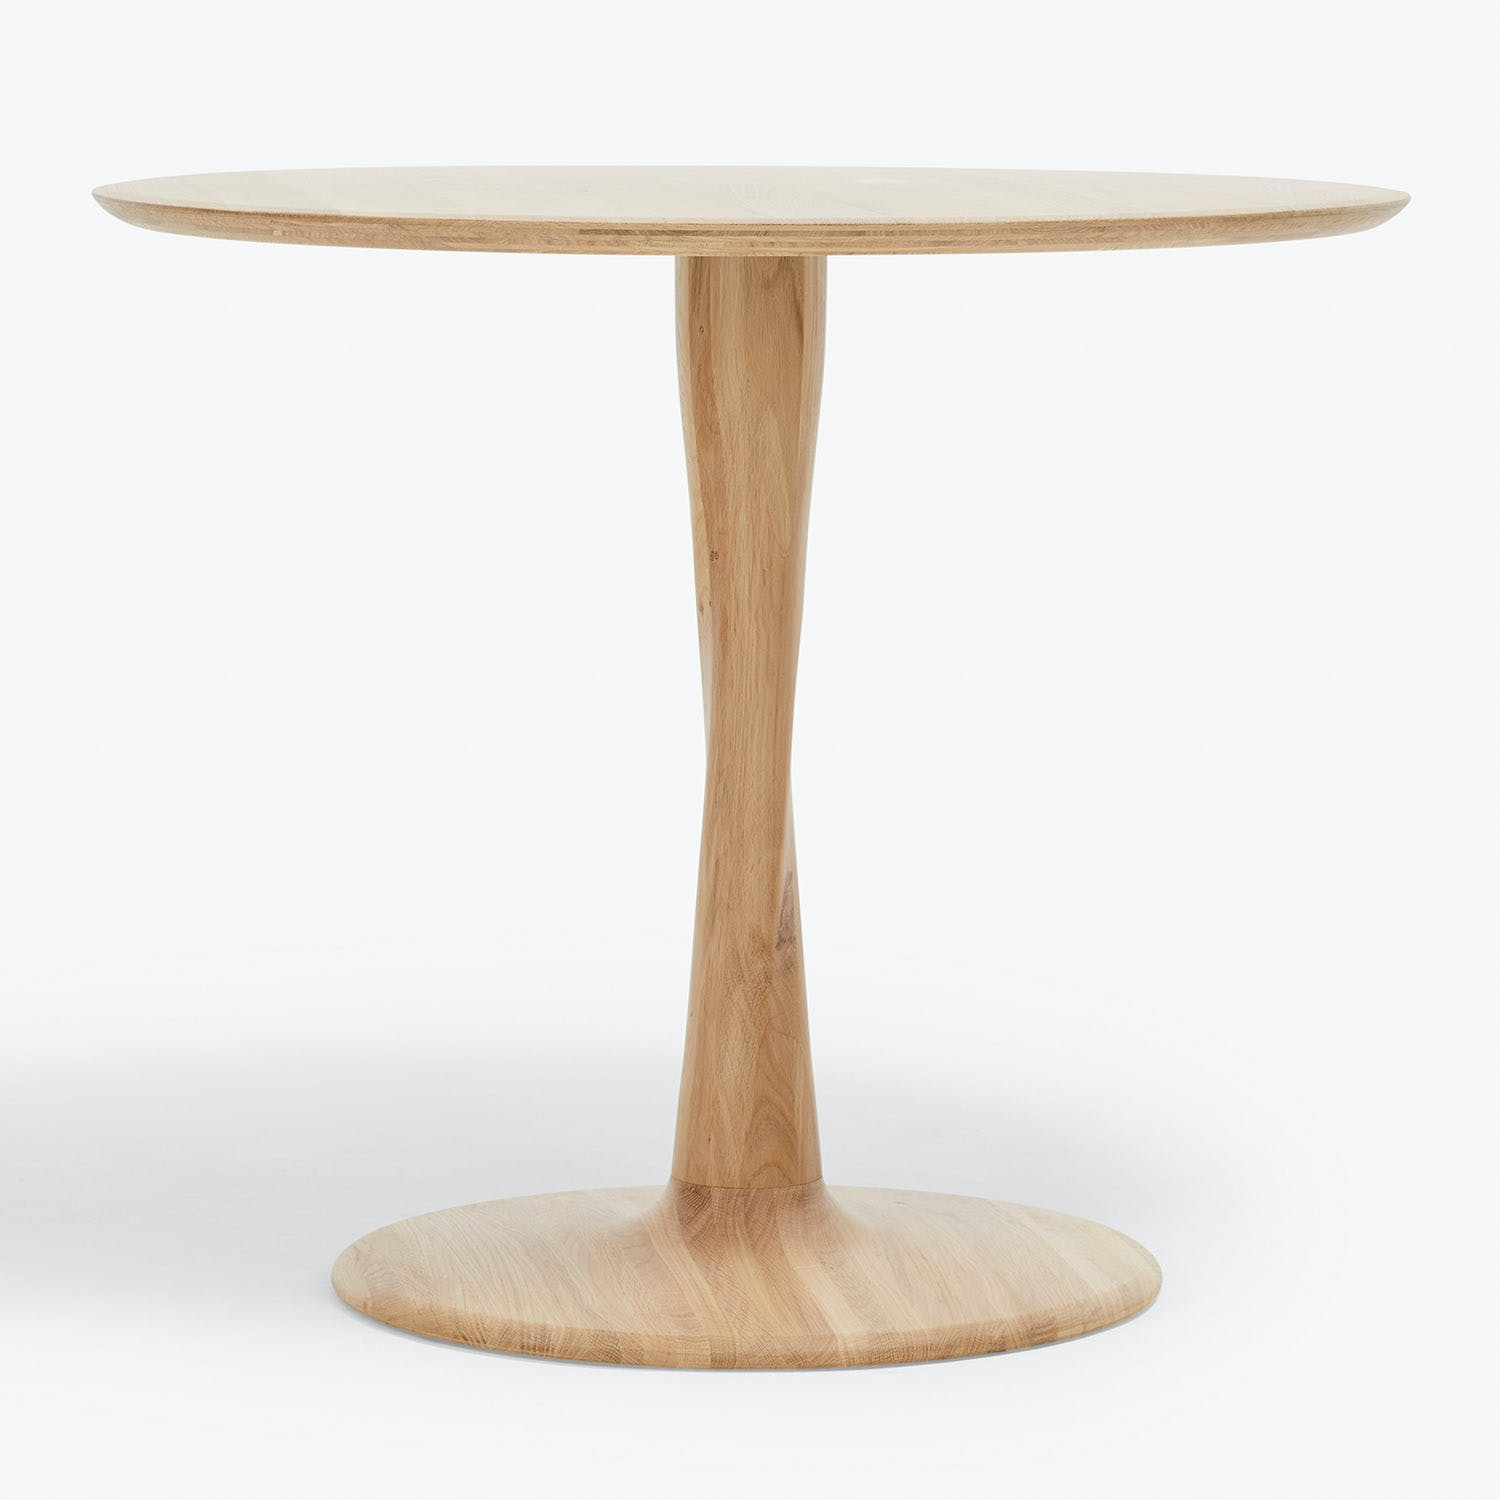 Product Image - Natural Oak Torsion Round Dining Table